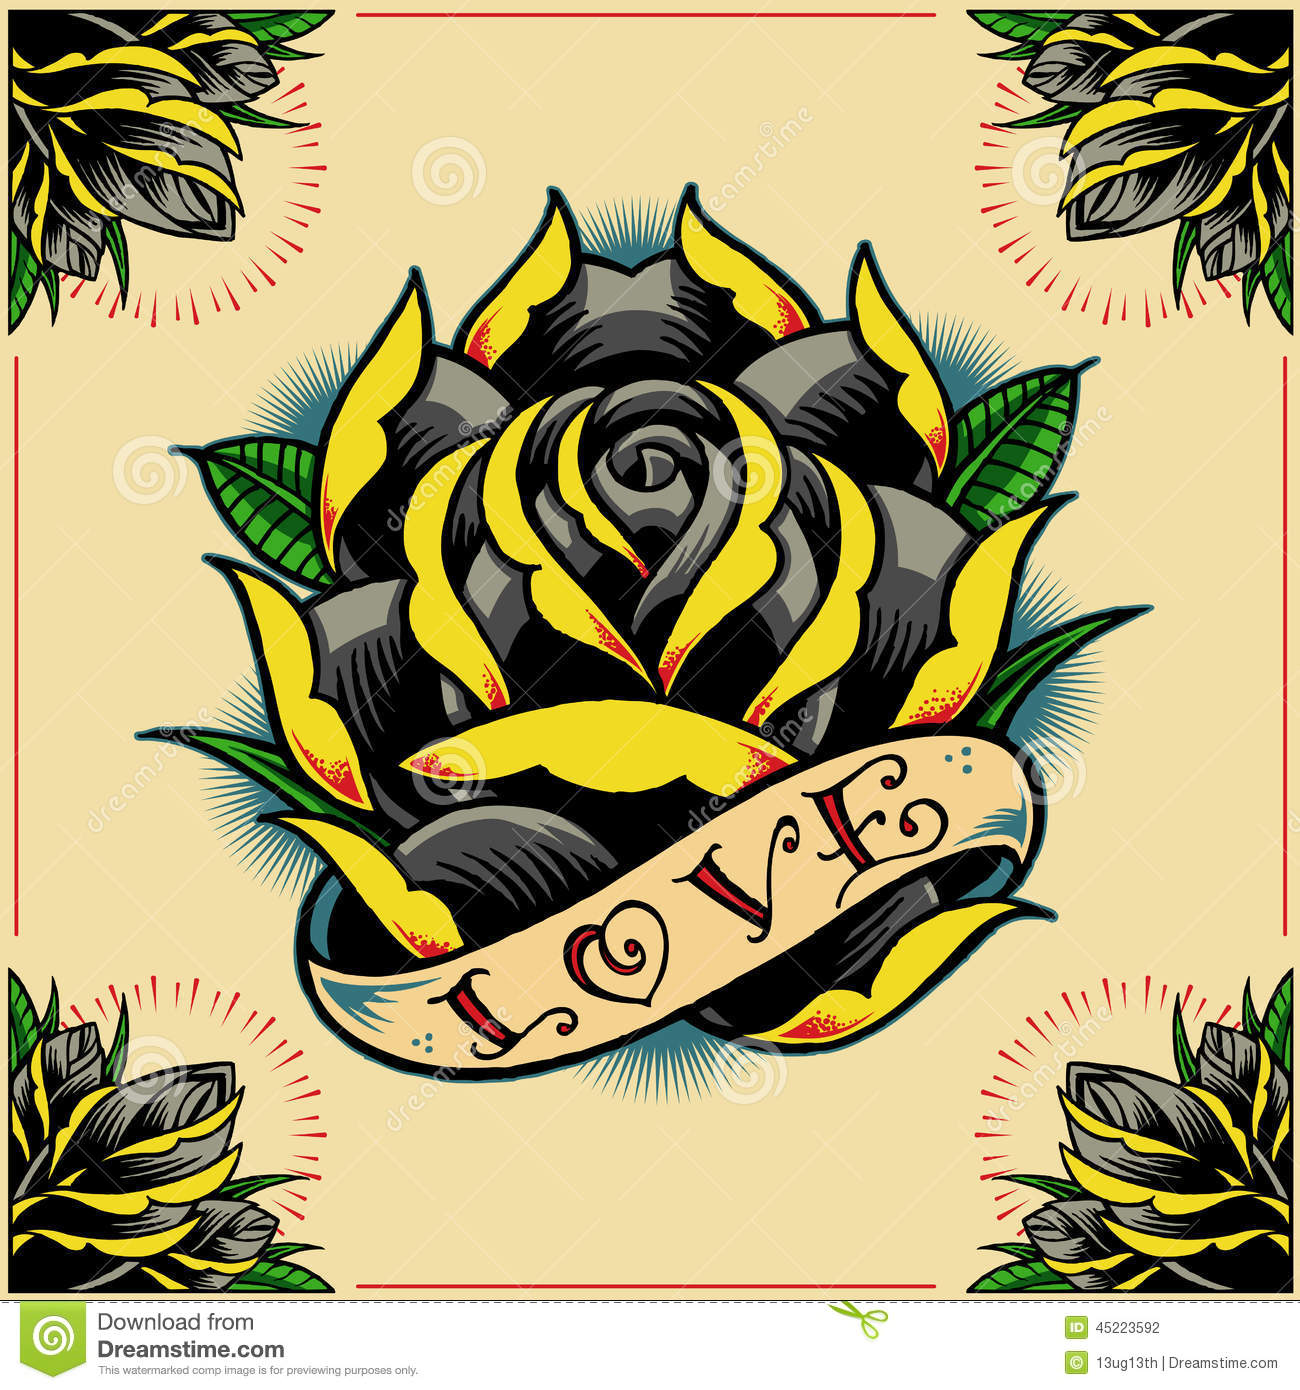 88341a81 68d6 4d4f A10d D671aaba3f16 also Stock Illustration Rose Ribbon Roses Frame Old School Tattoo Style Set You Guys Can Edit All Colors Yourself Image45223592 additionally Tattoodrawings moreover Crataegus Laevigata Paul S additionally Rose tattoo. on dead rose design